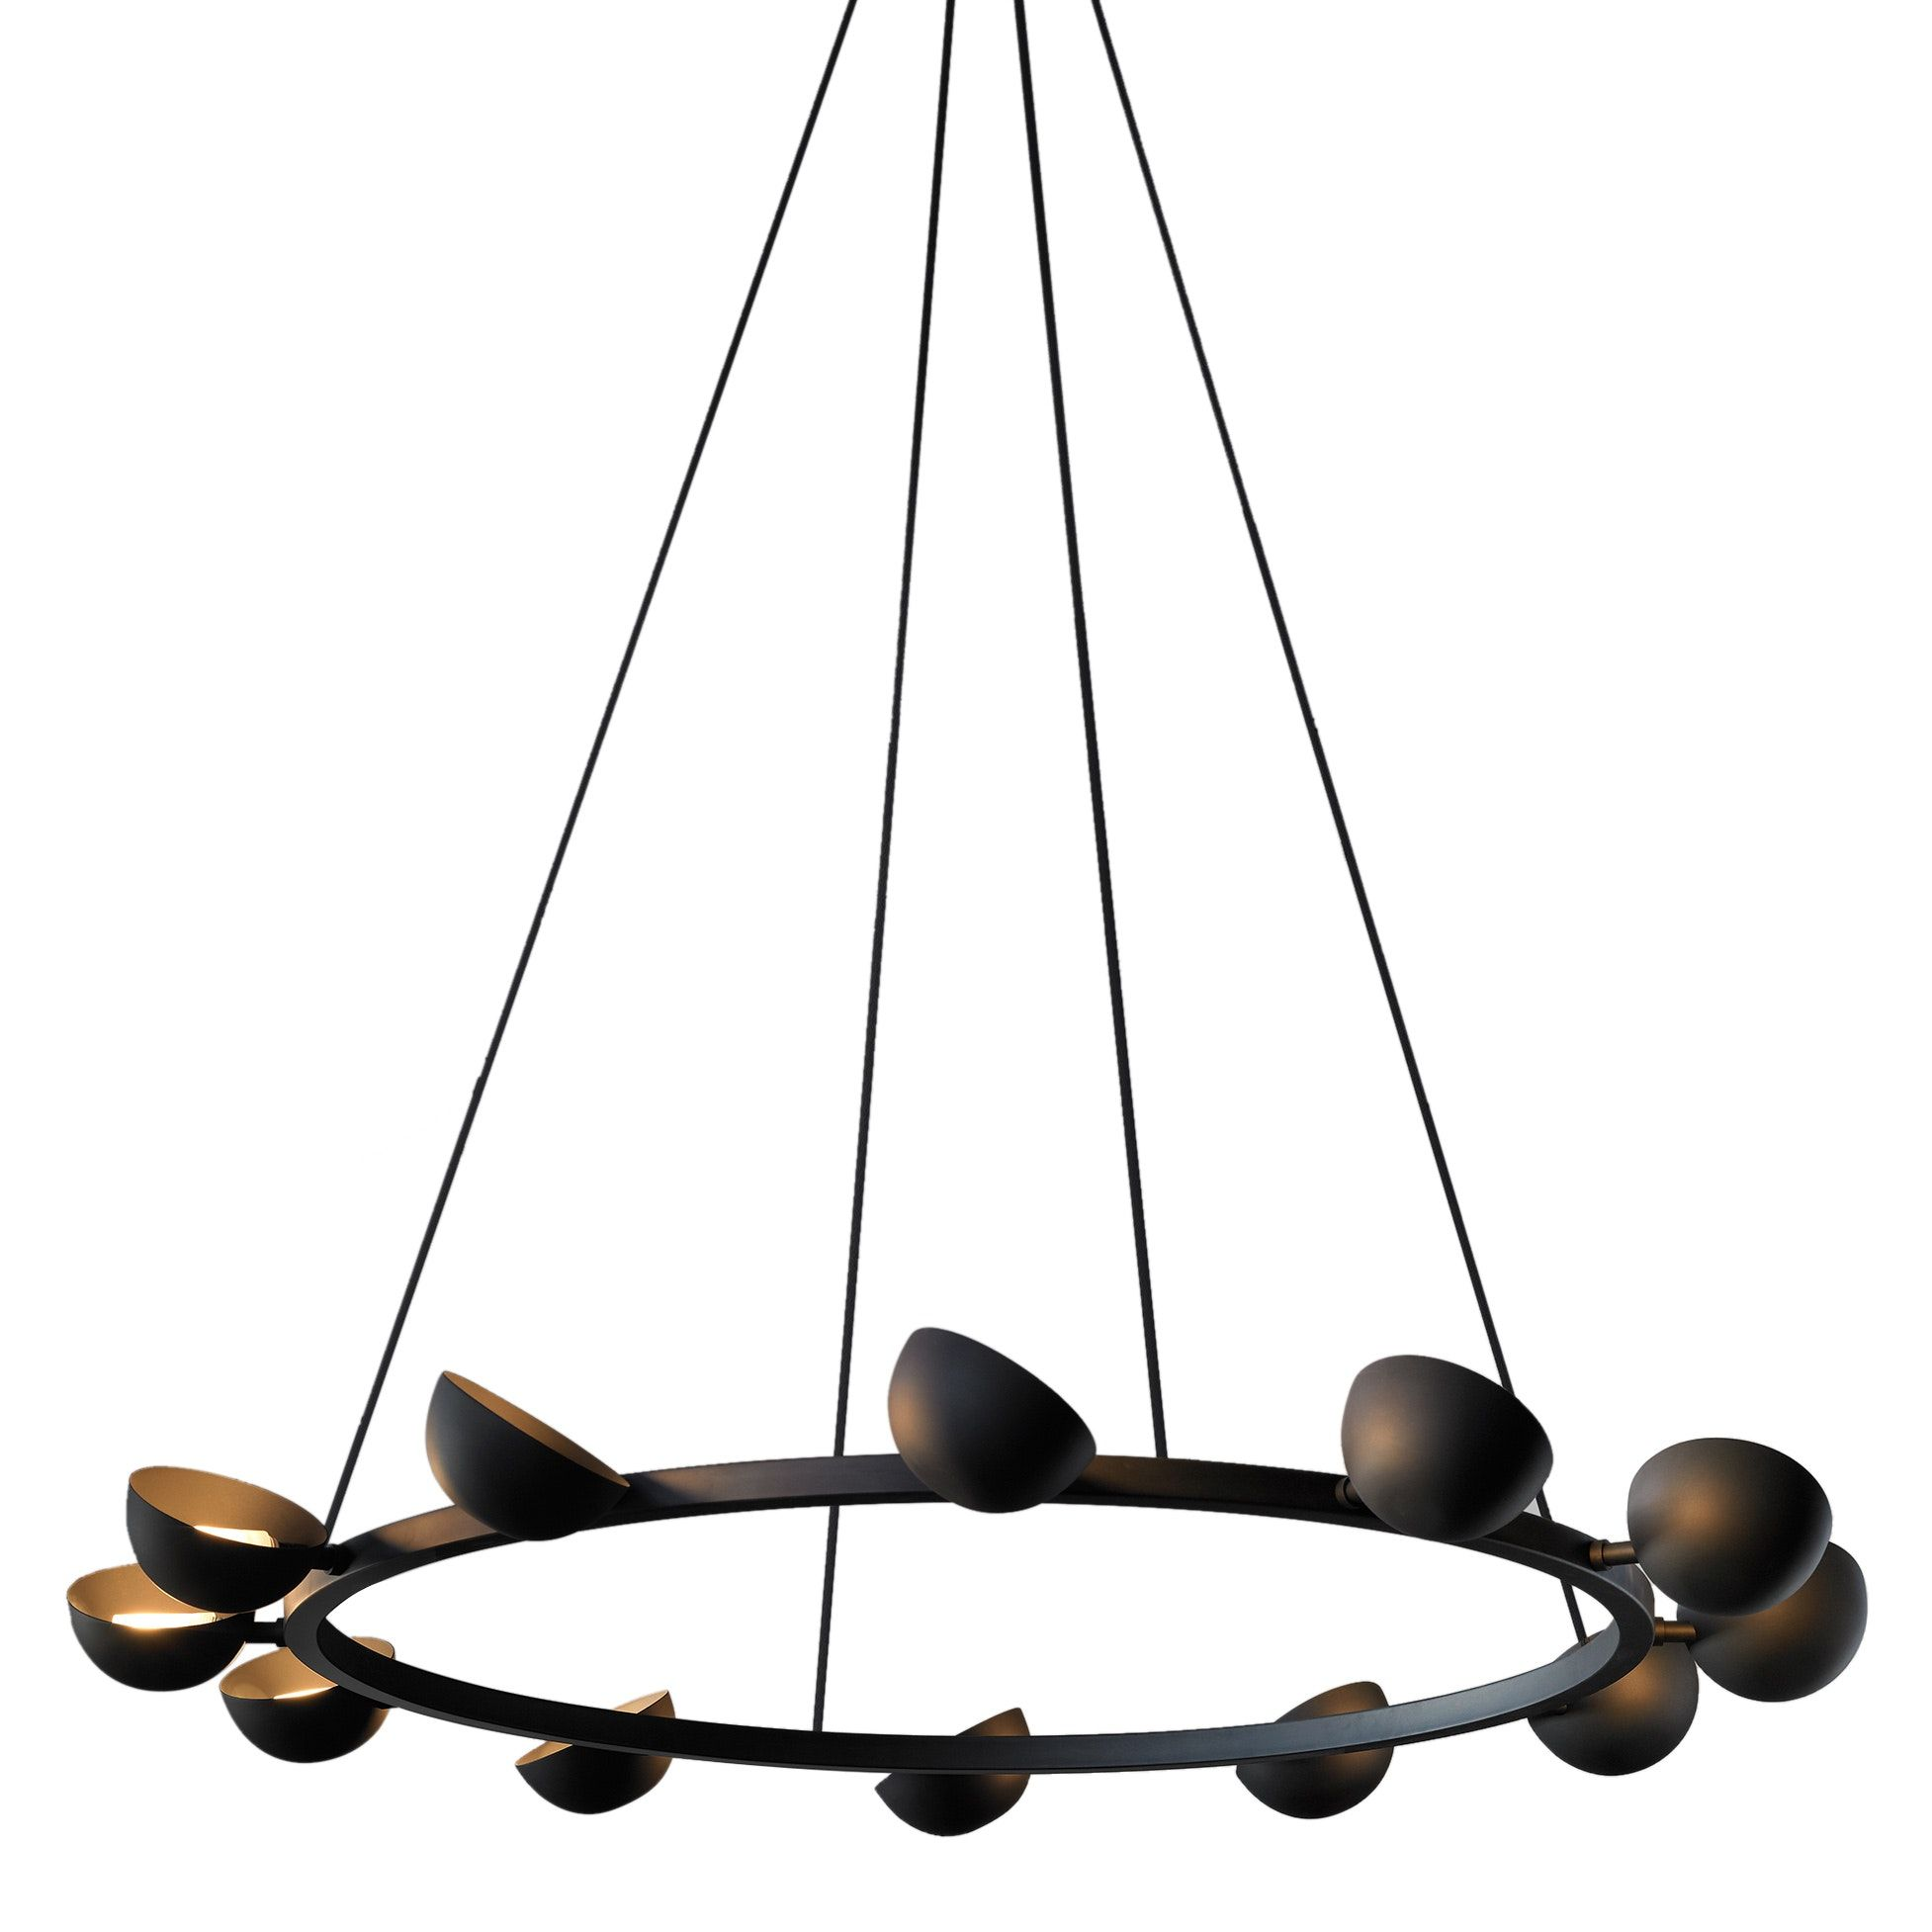 Jbs Avion Round 12 Light Chandelier By Jonathan Browning Studios Price On Request Chandelier Lighting Chandelier Contemporary Chandelier